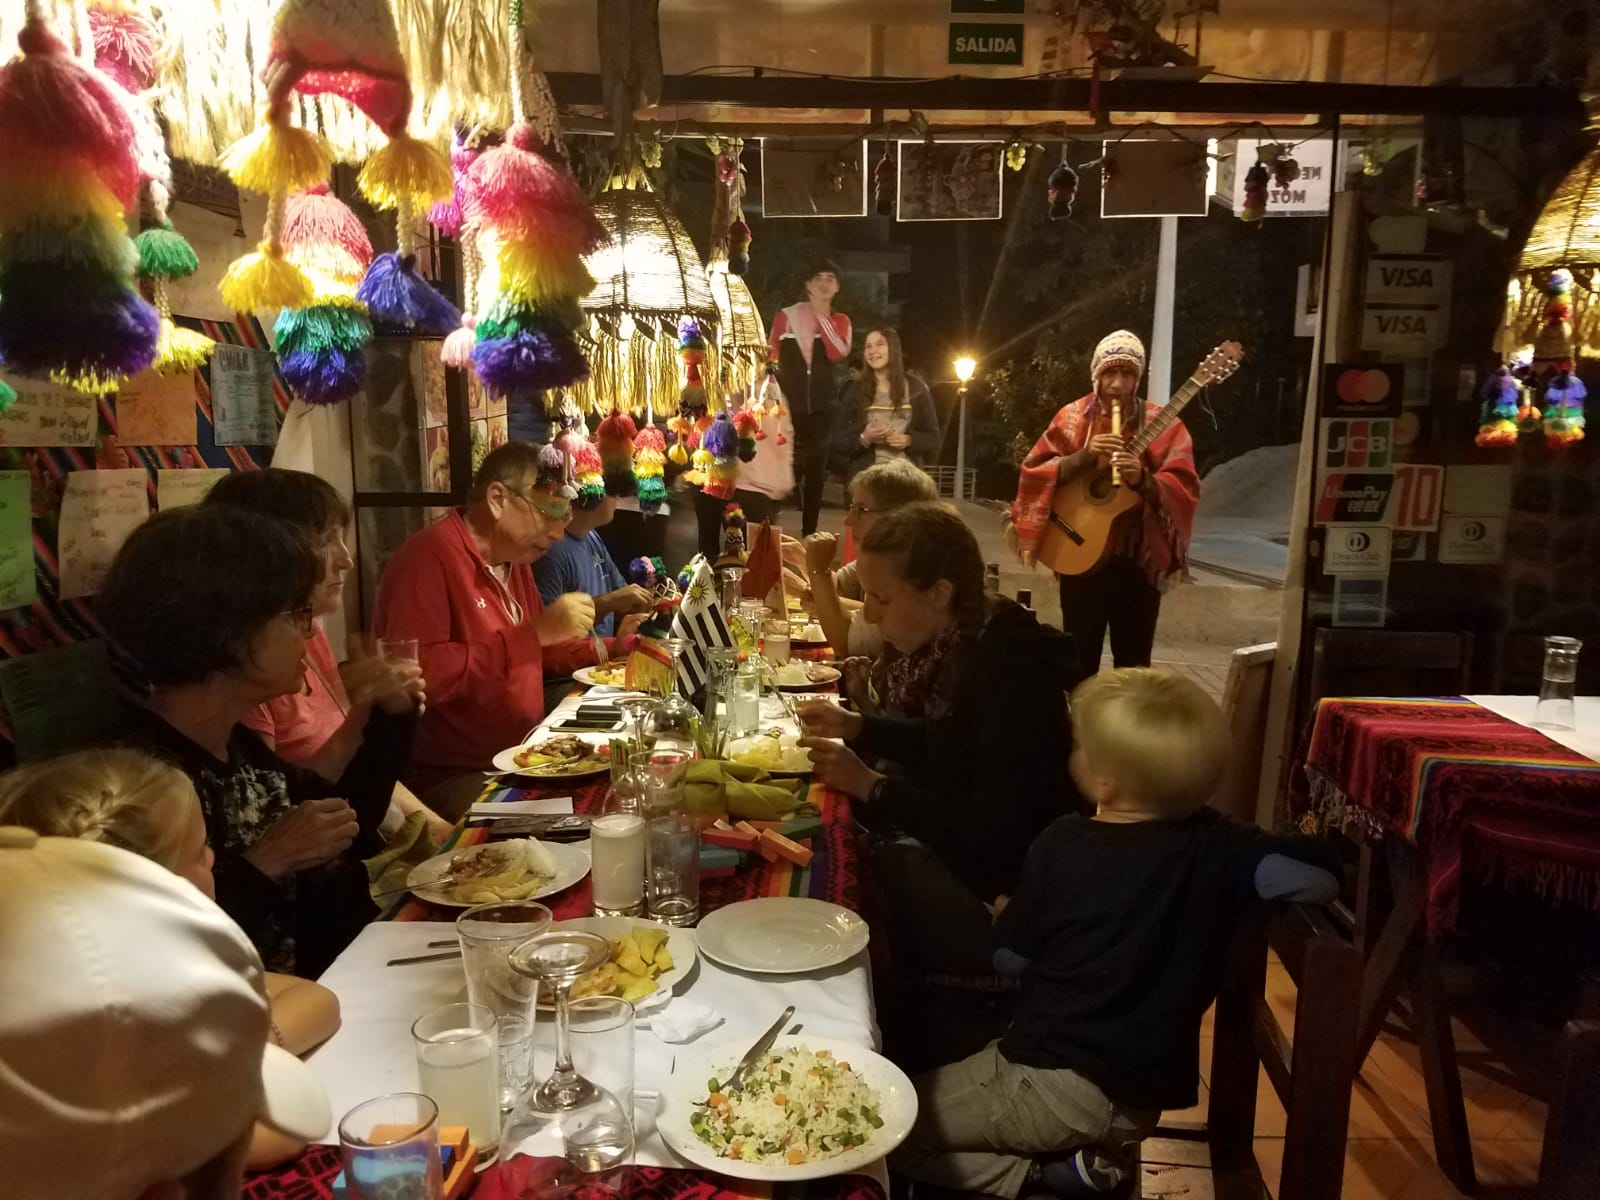 A late dinner at Aguas Calientes after getting Edie's boots back